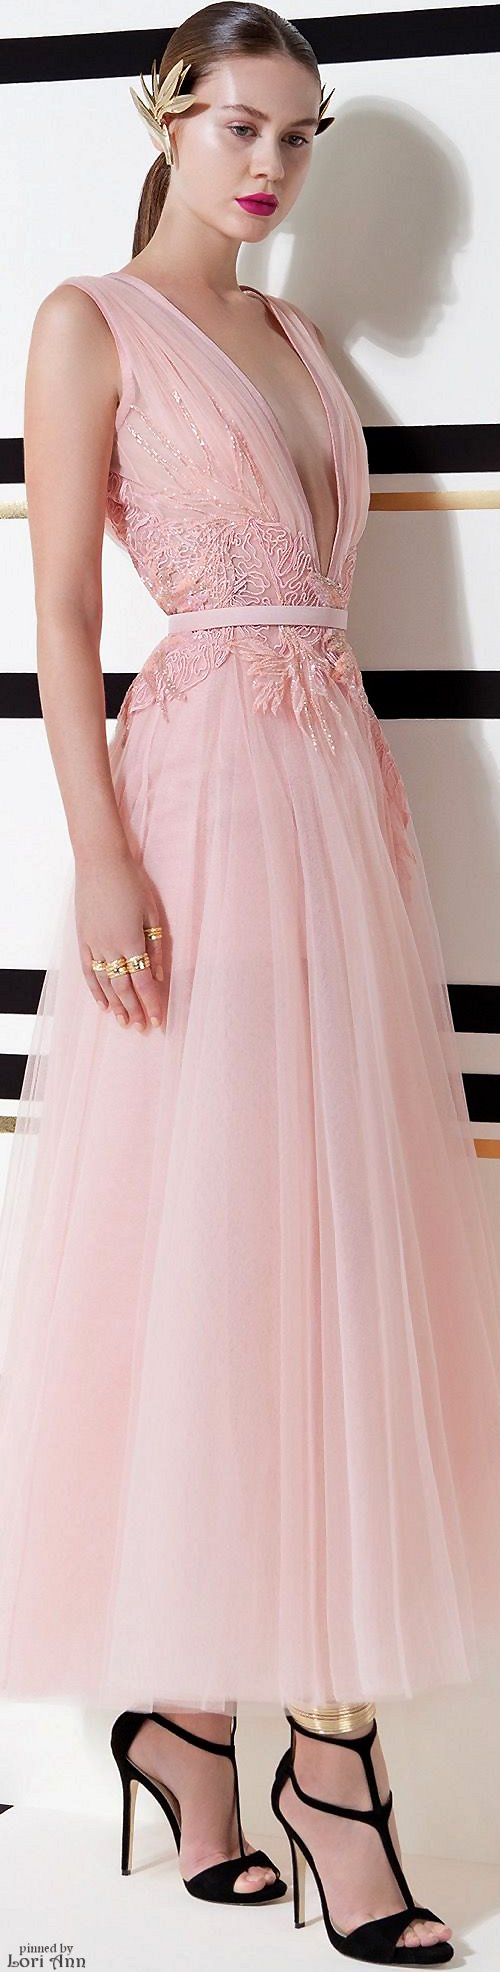 I\'m seeing a lot of flowing gowns with sheer fabric and fairytale ...